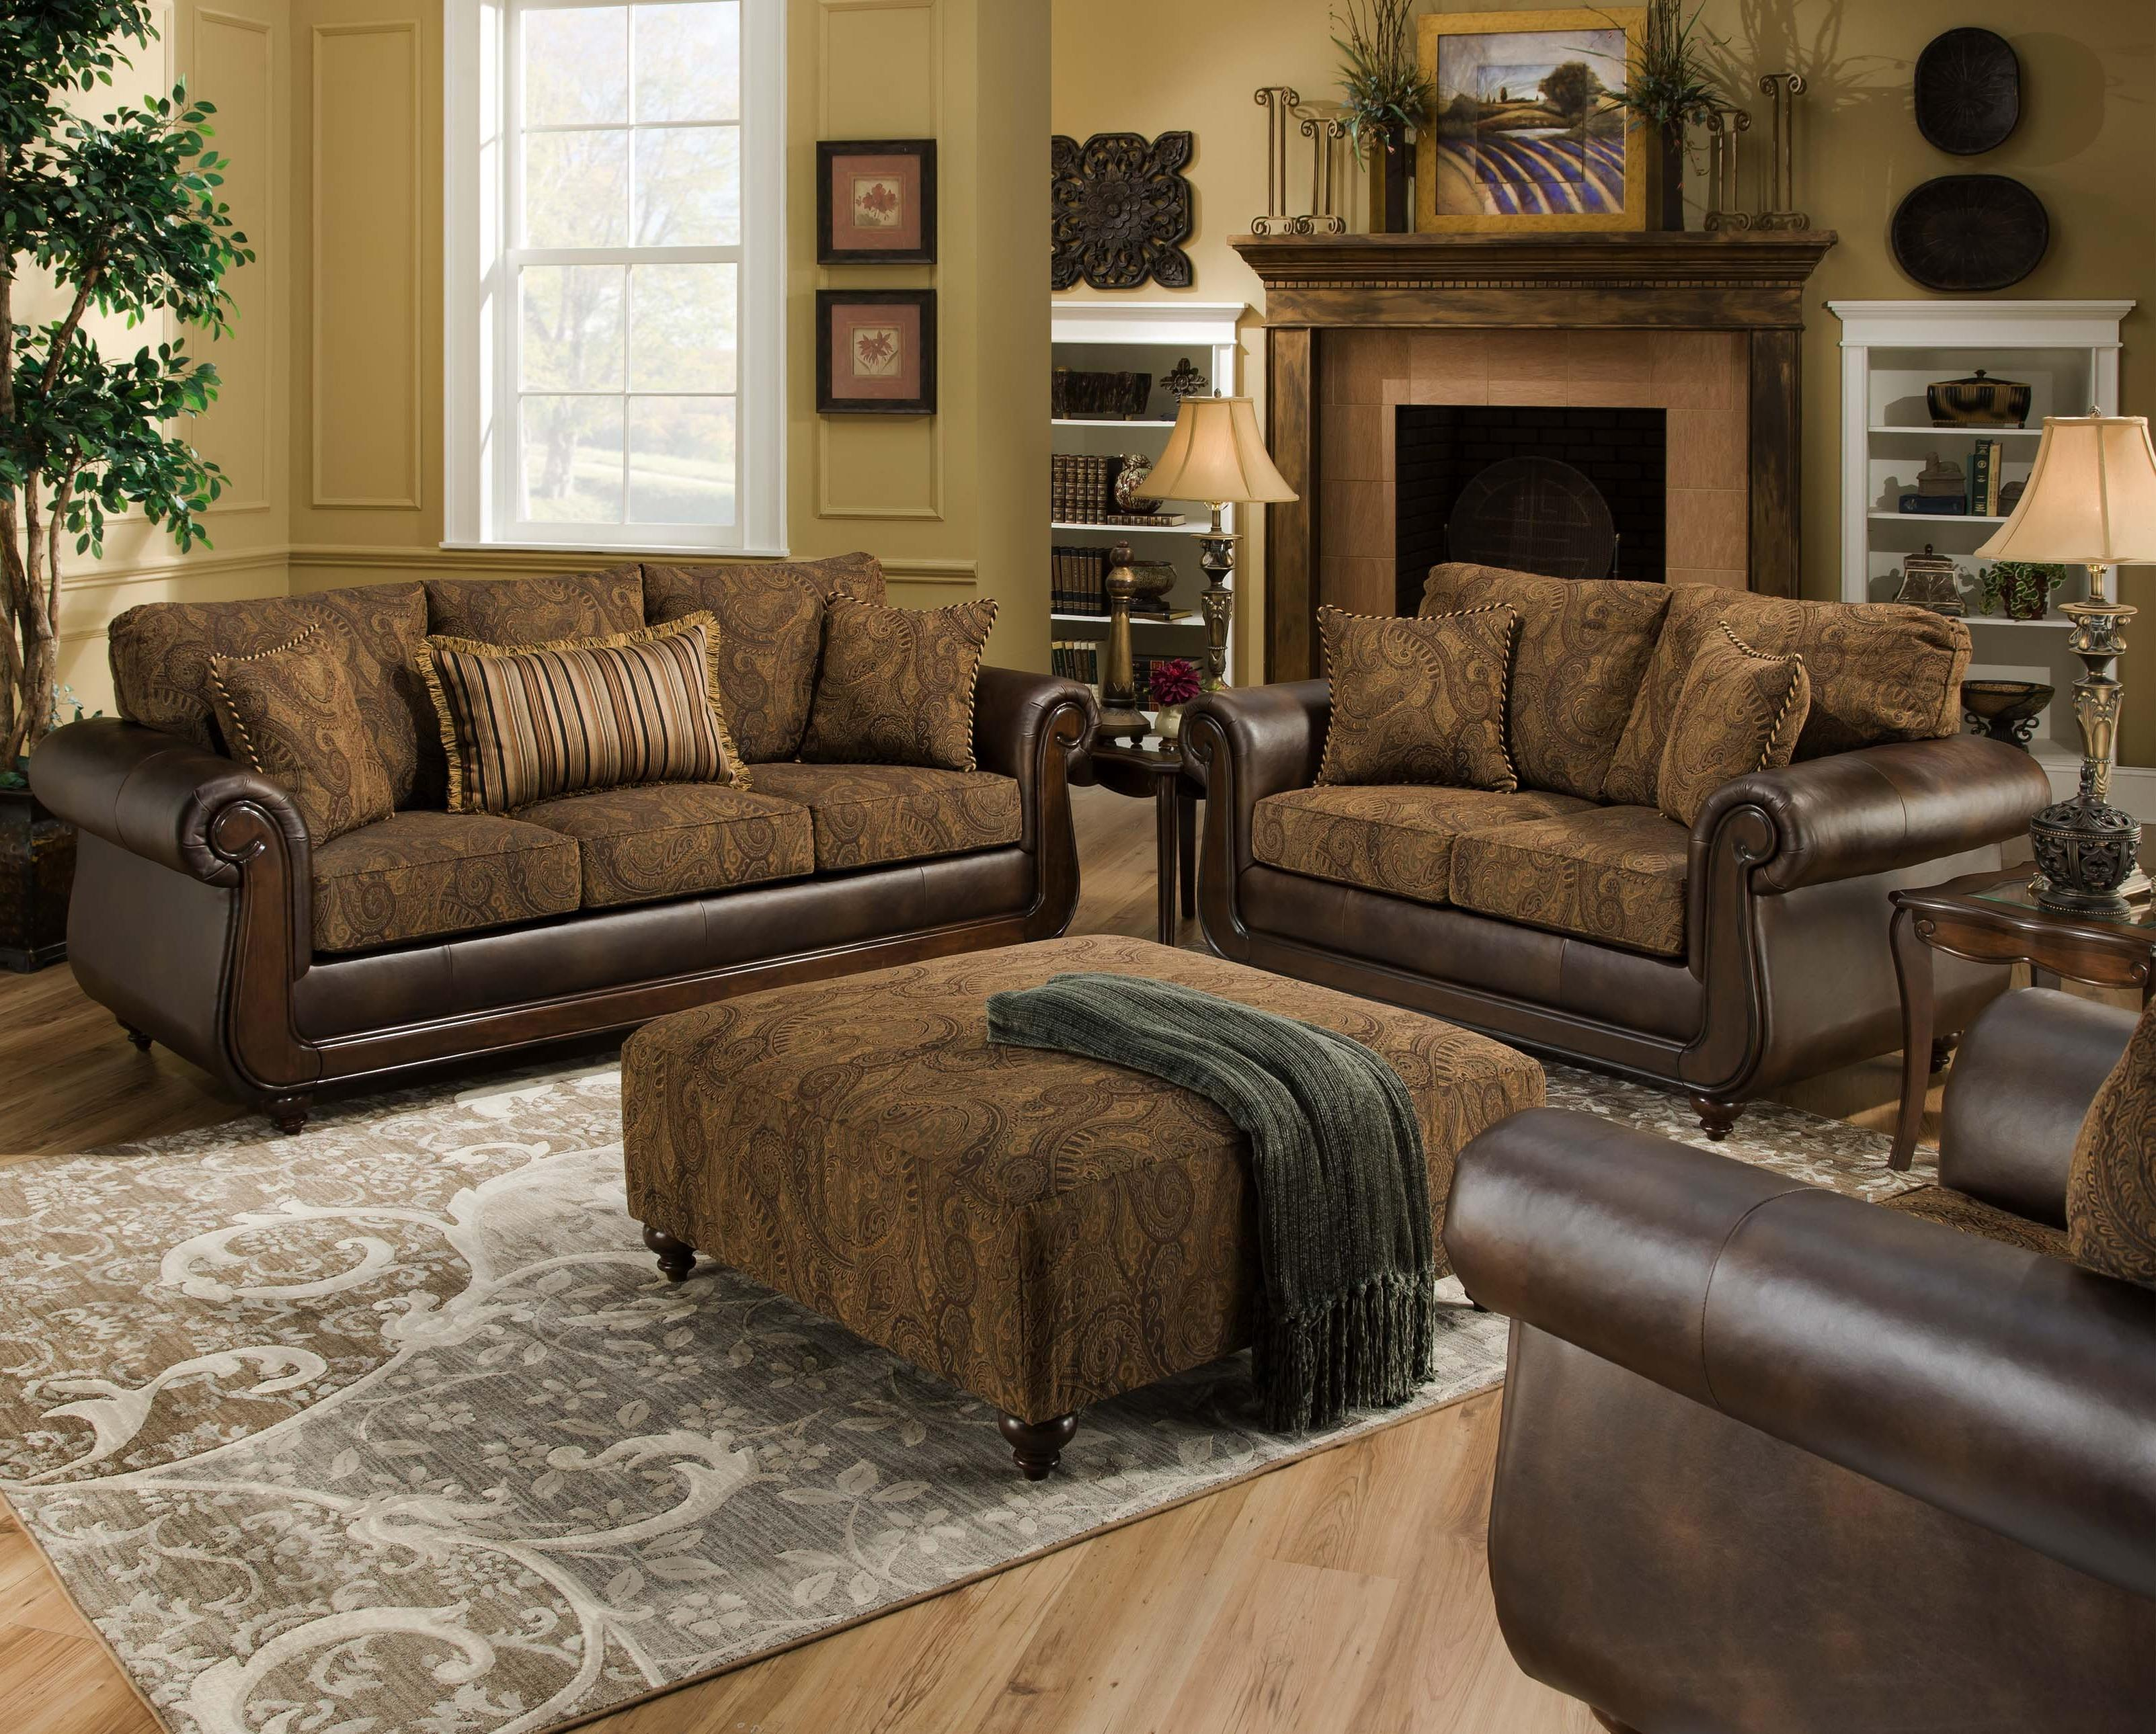 american furniture living room sectionals simple interior designs for rooms 5850 stationary group miskelly